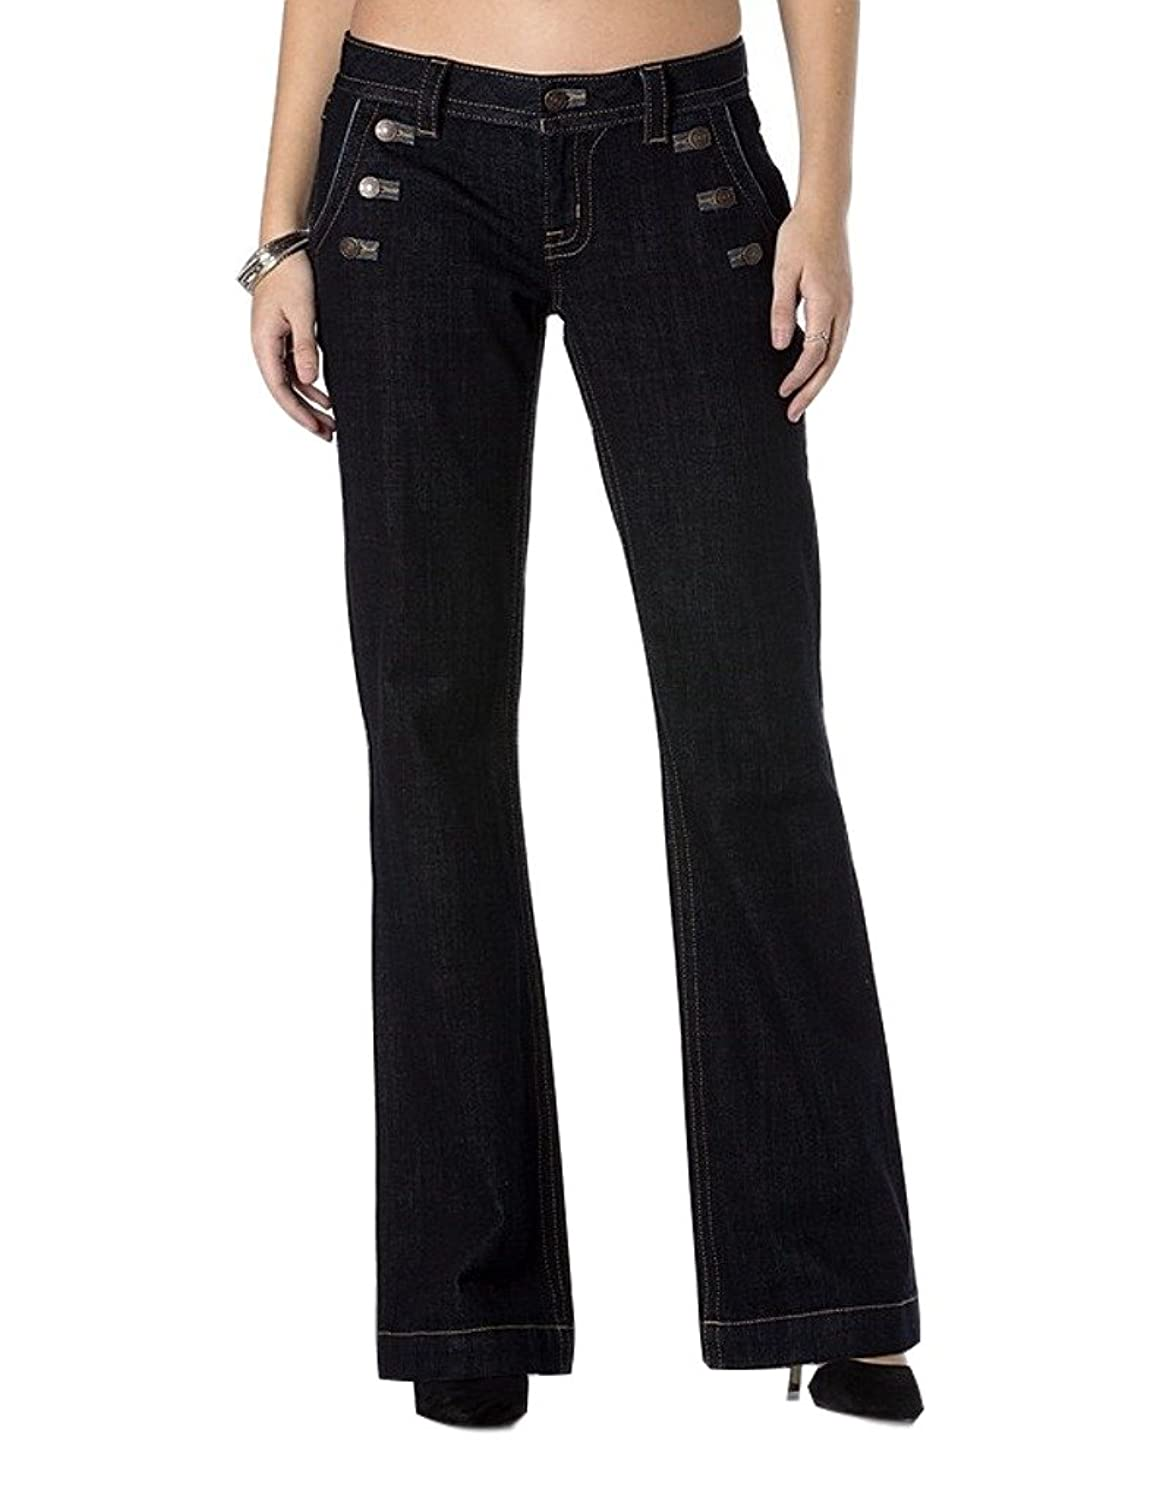 Miss Me Denim Jeans Womens Trouser 3 Buttons Dark Wash MS5148W14